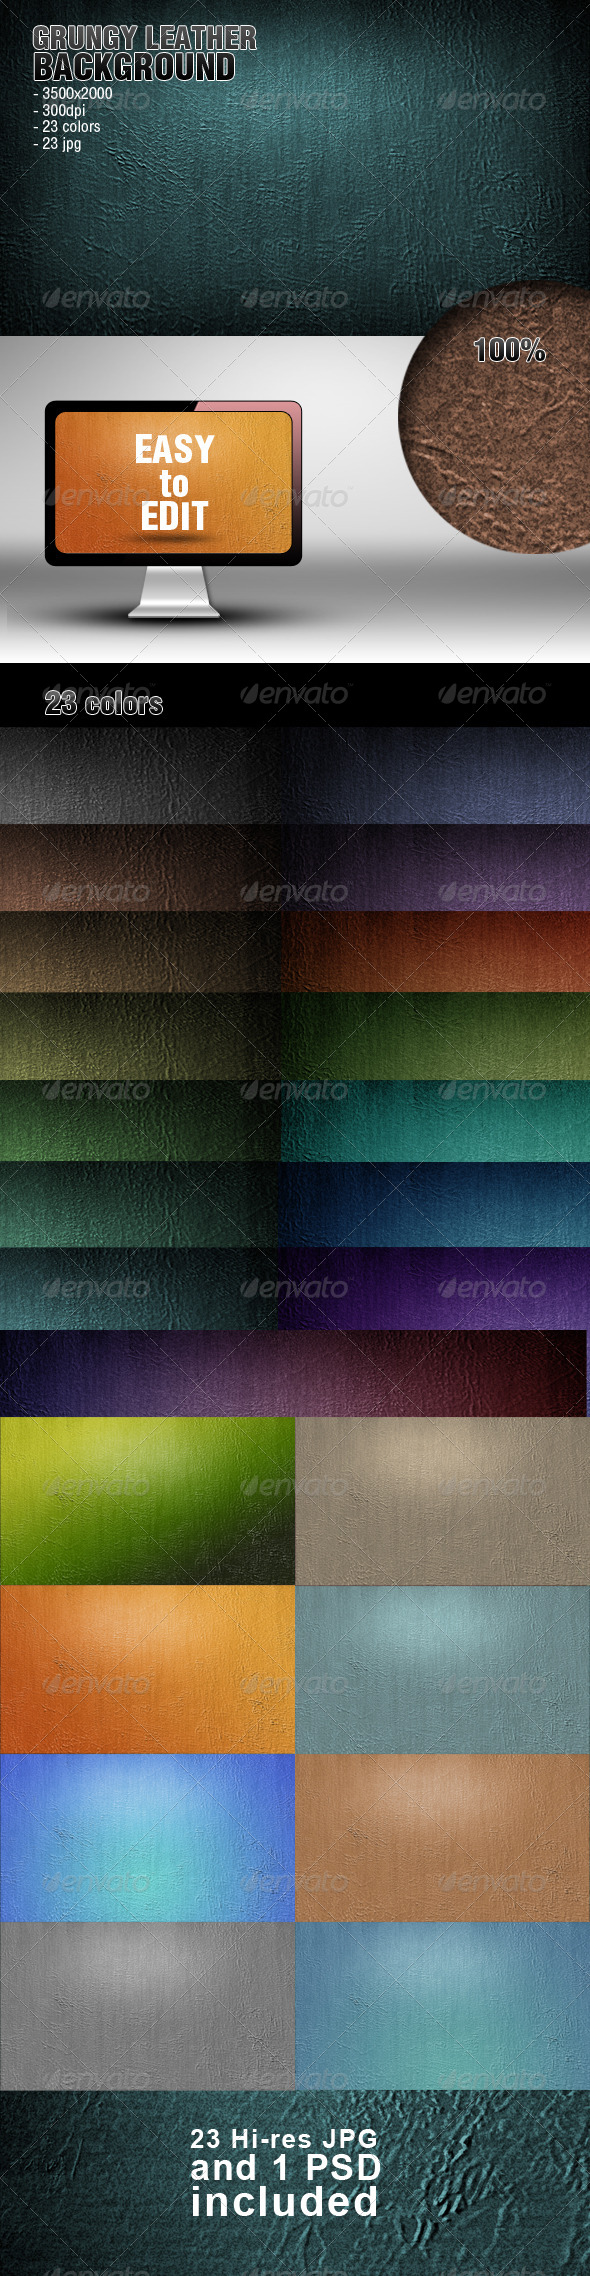 GraphicRiver Grungy Leather Background 4473893